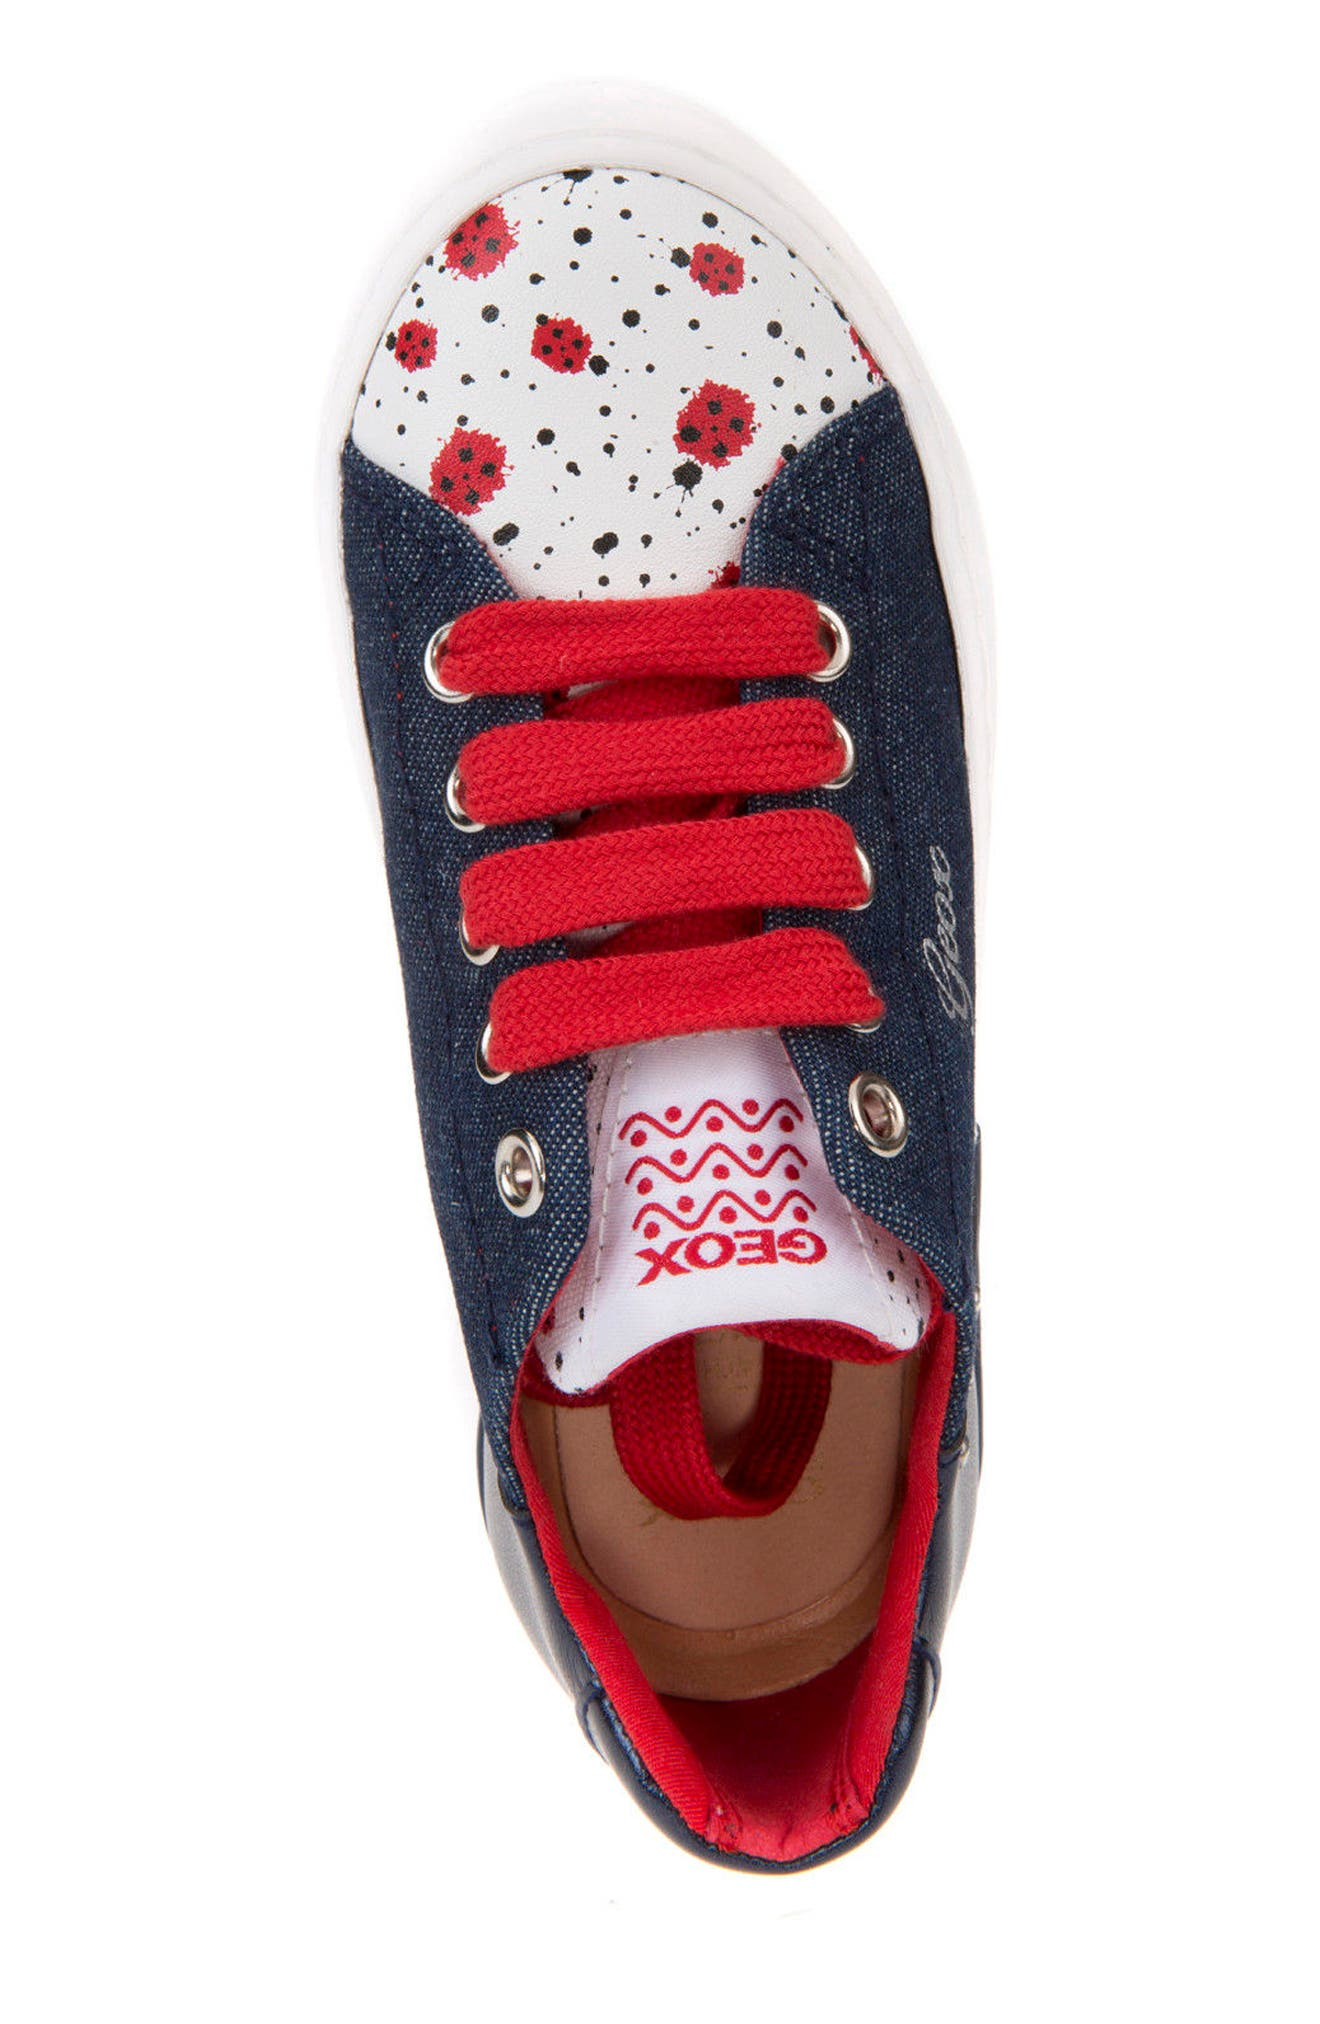 Ciak Low Top Sneaker,                             Alternate thumbnail 4, color,                             Jeans/ Navy